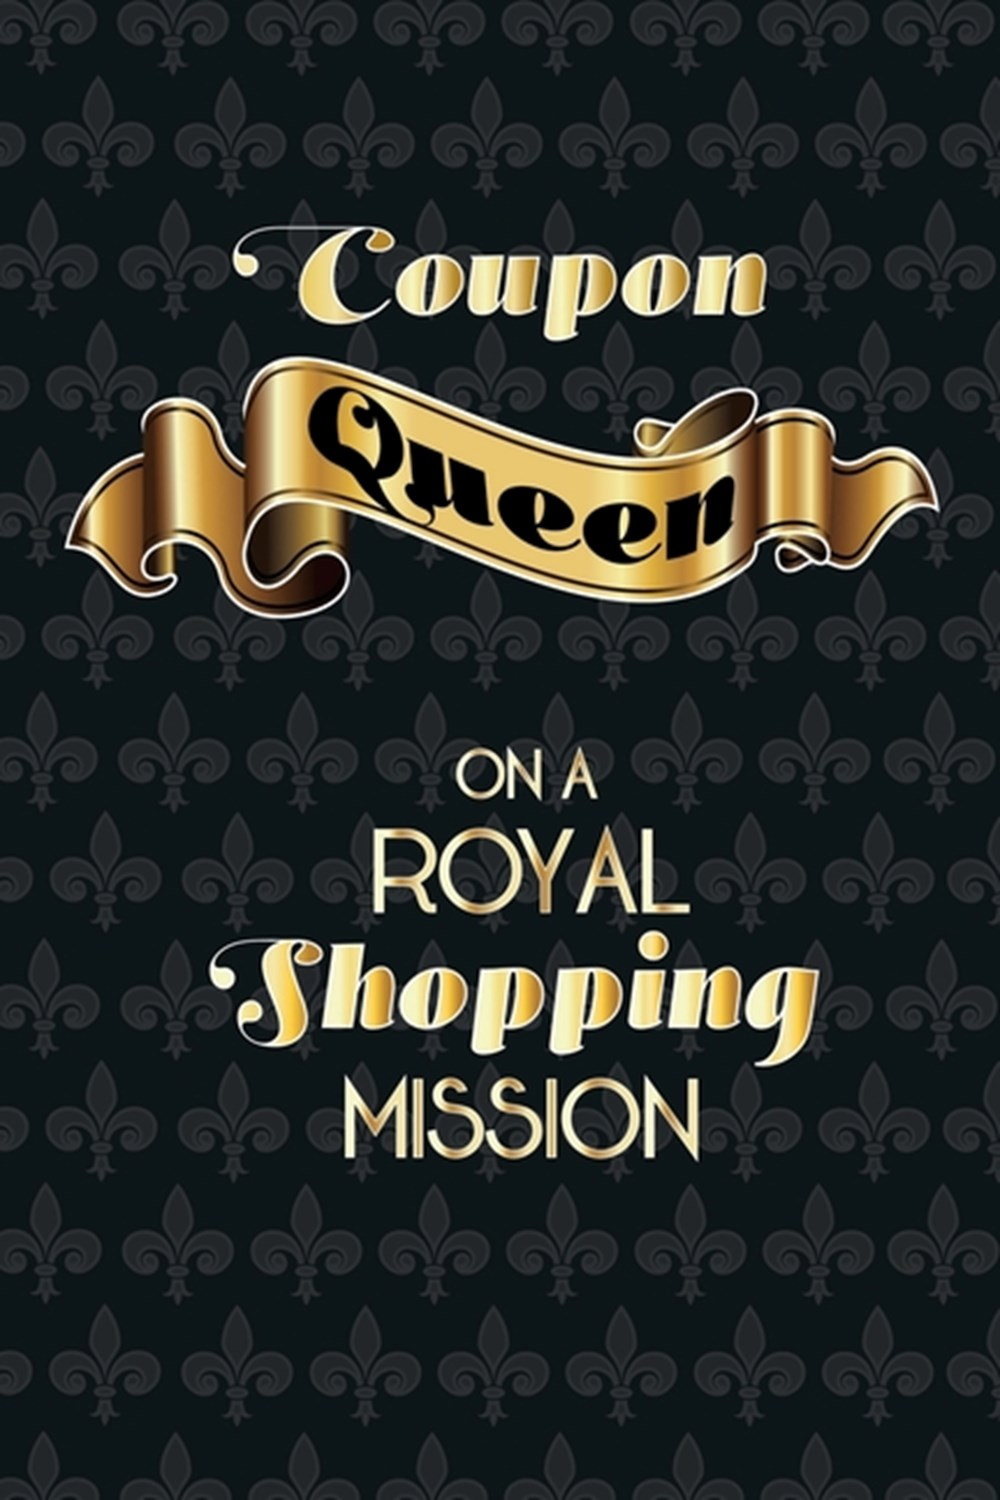 Coupon Queen The Ultimate Couponing Journal To Keep Track And Plan all Your Bargain Shoppings, gloss